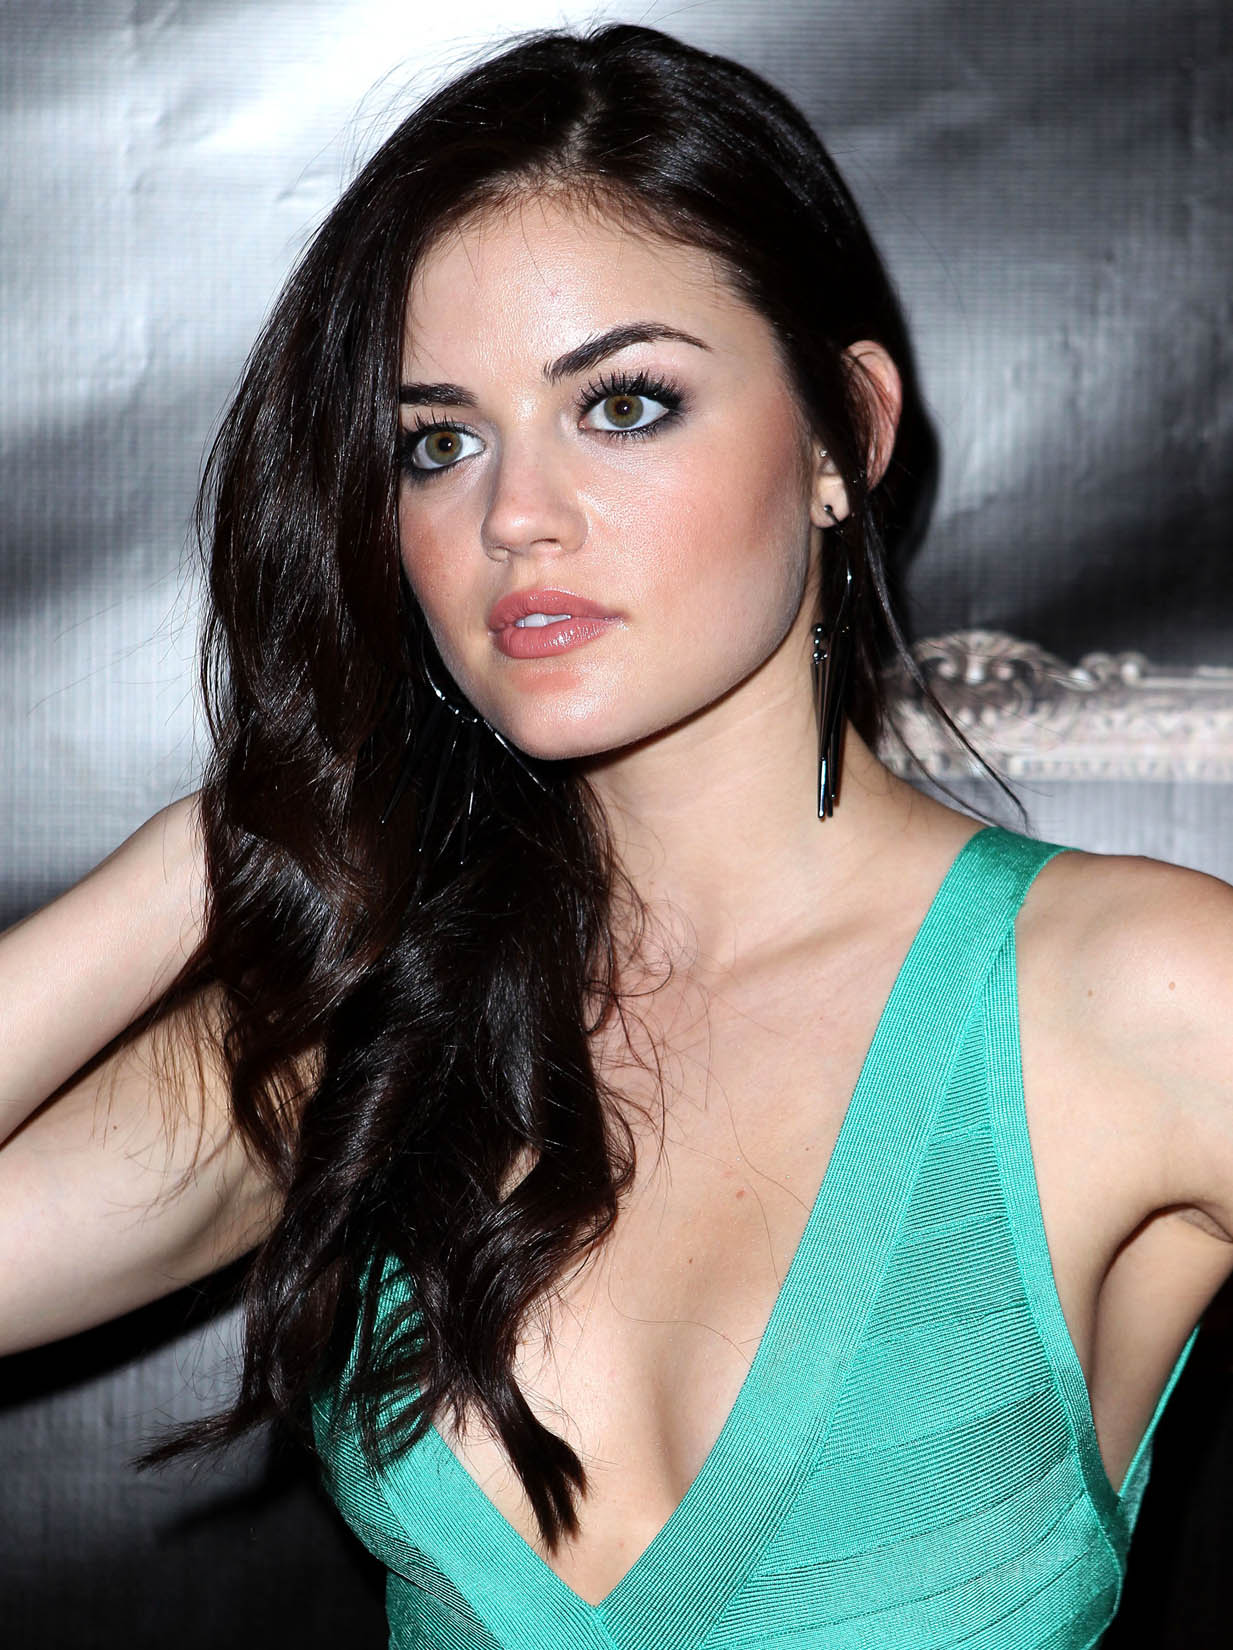 Lucy Hale - Wallpaper Actress